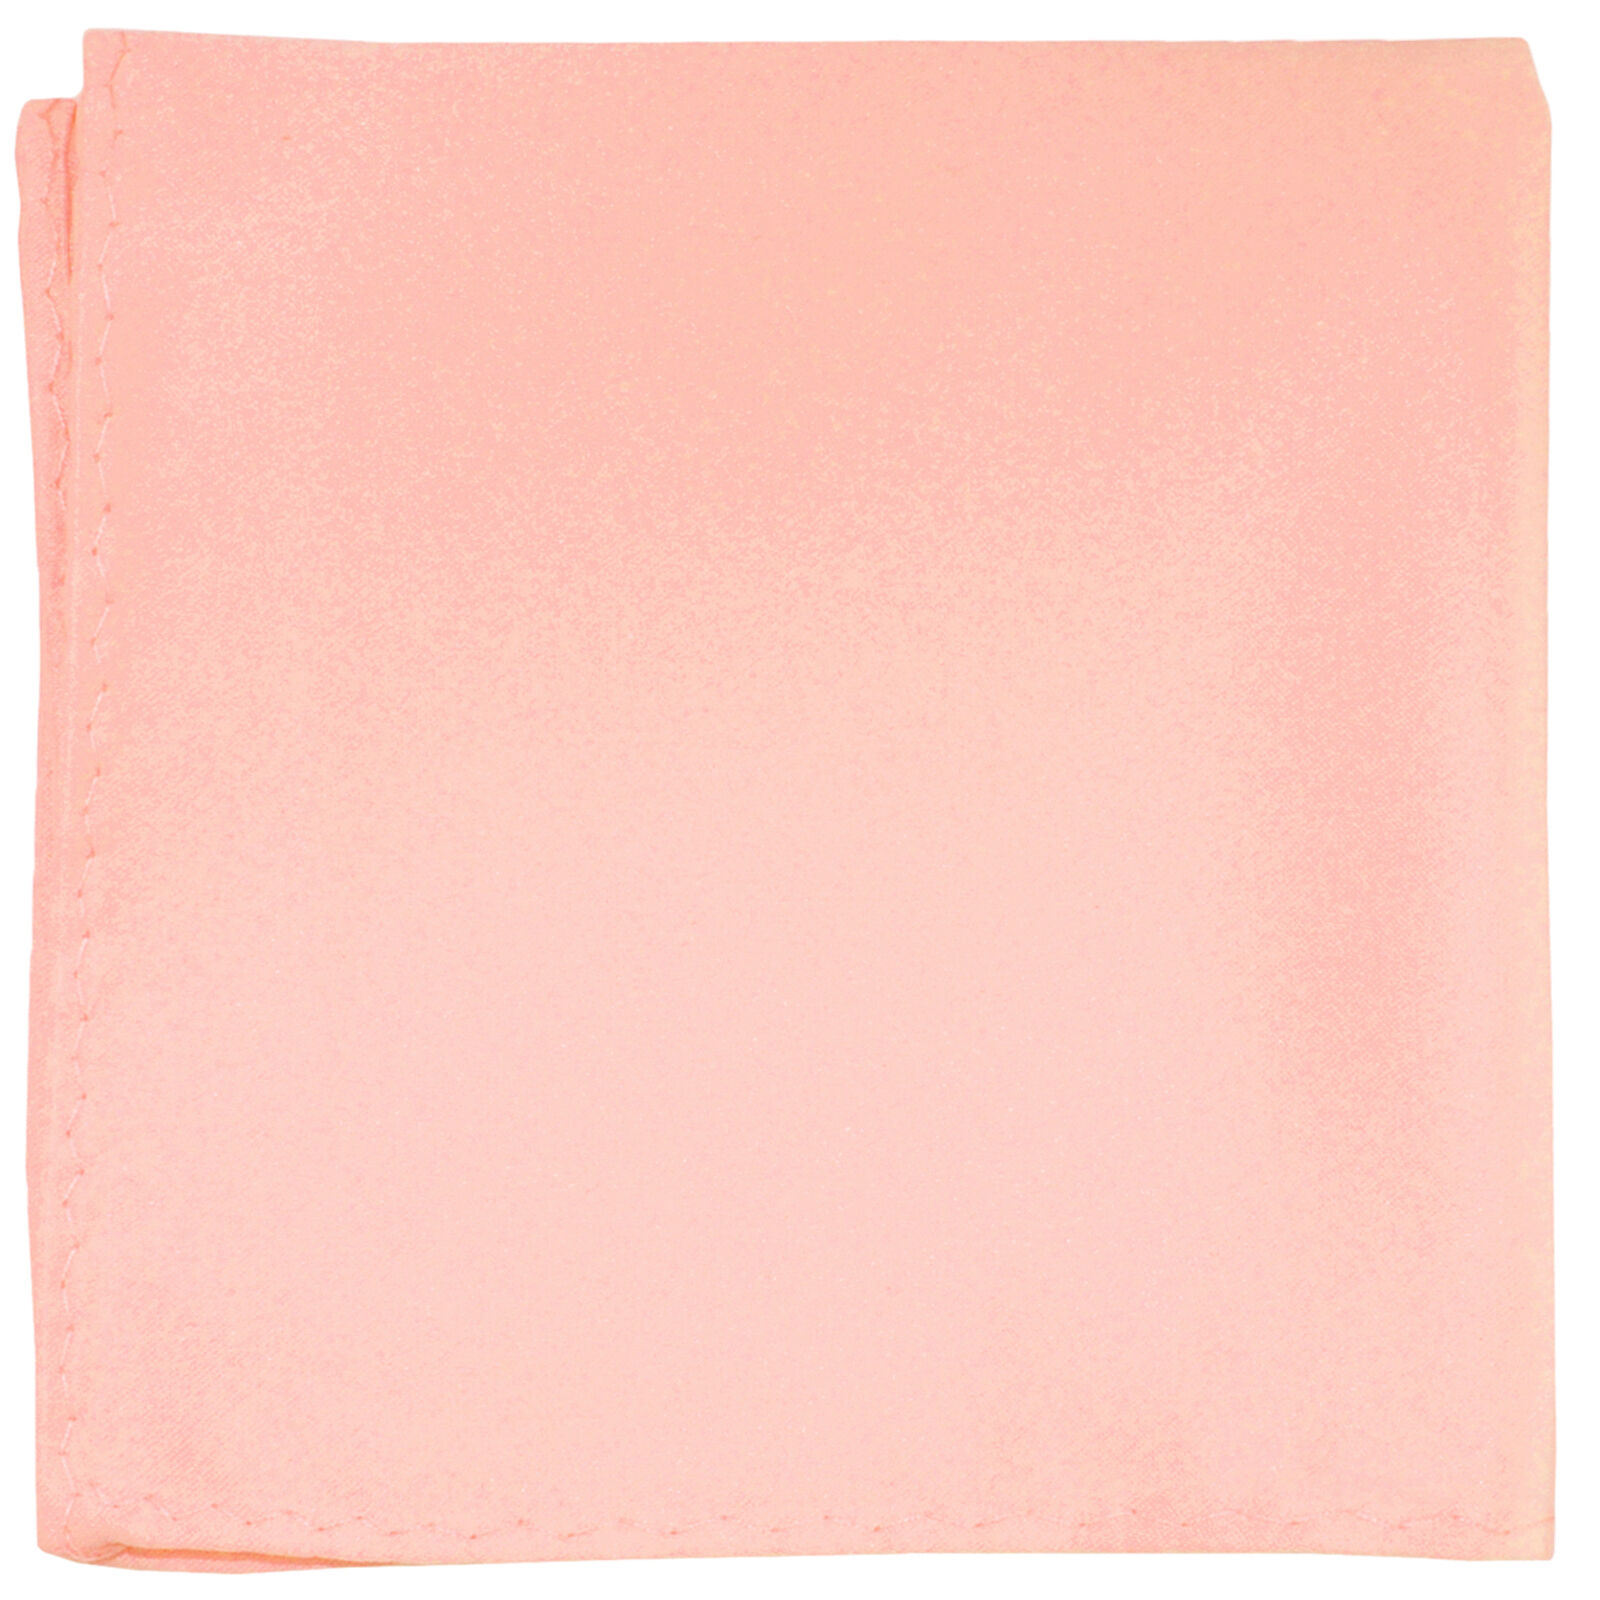 New men's polyester solid mauve pink hankie pocket square formal wedding party